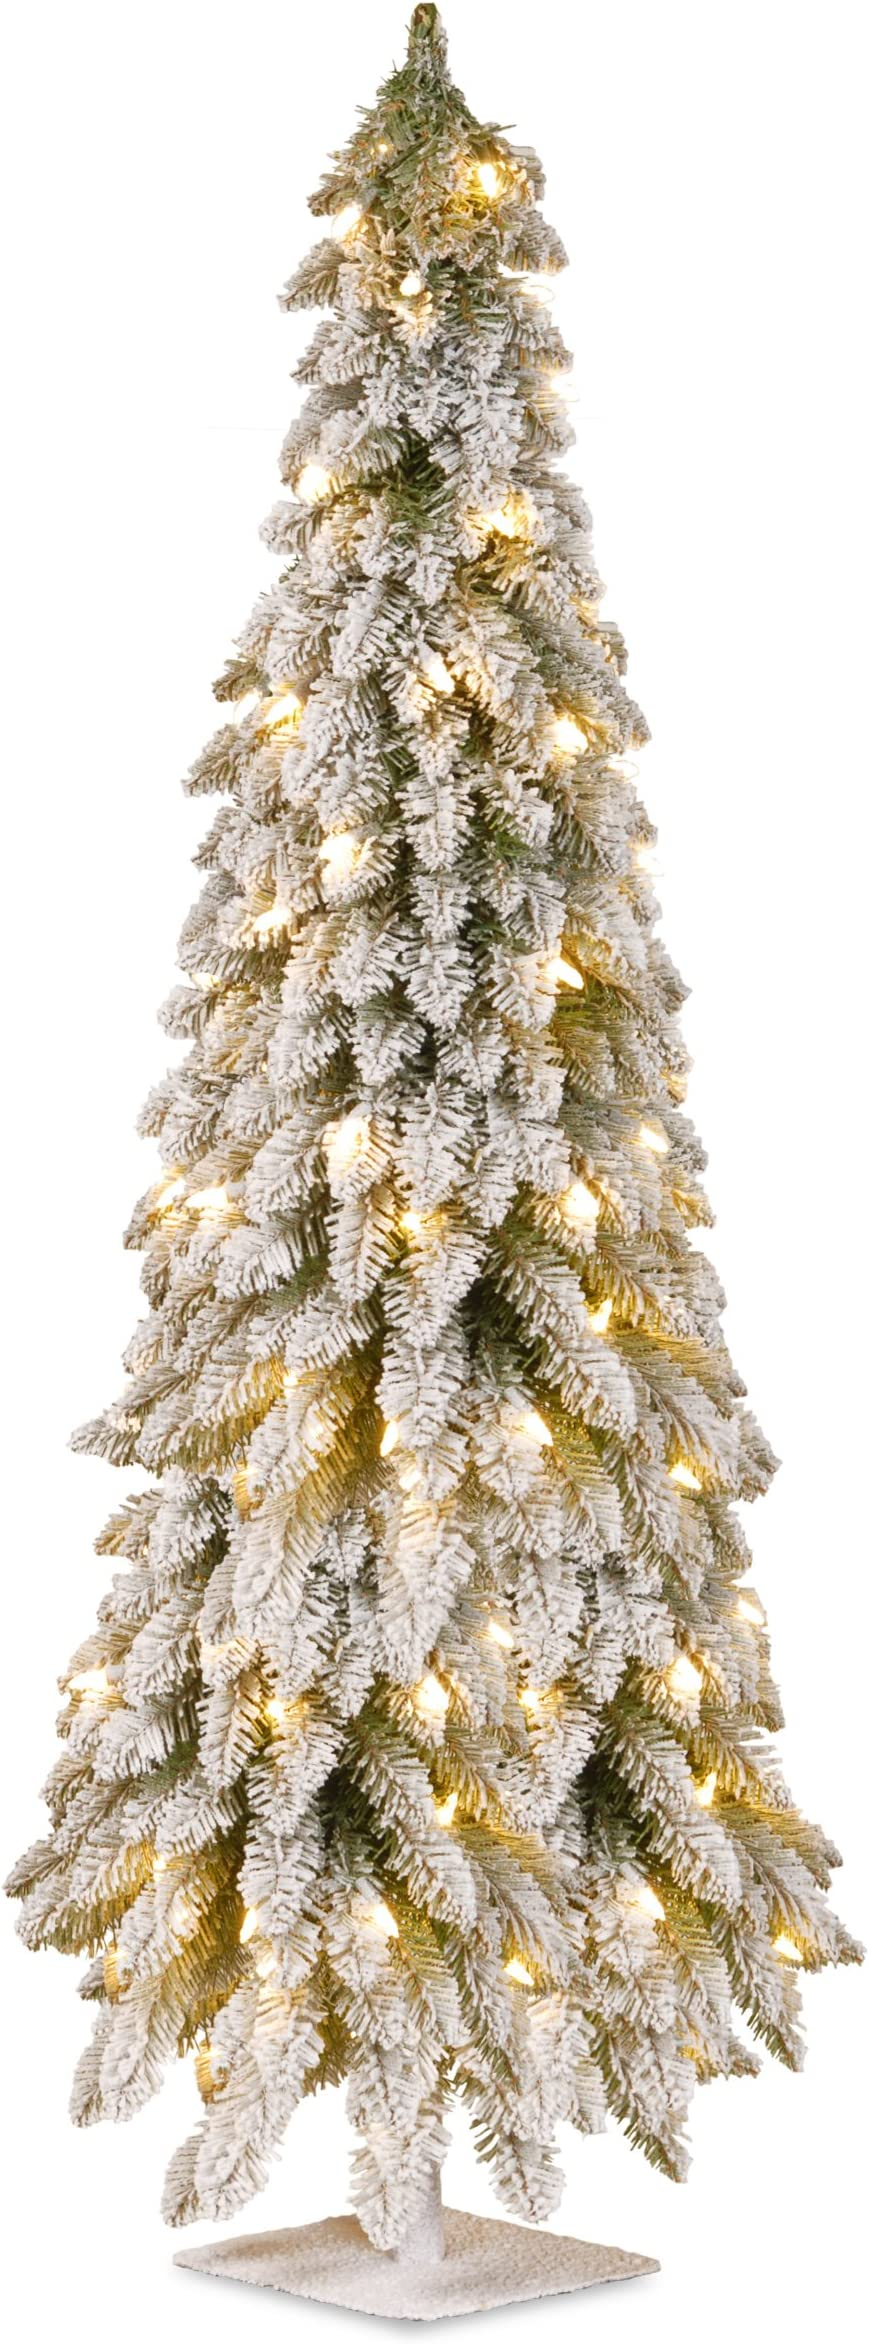 National Tree 60 Inch Snowy Downswept Forestree With 200 Clear Lights On A Metal Plate Stand Ftdf1 60alo Home Kitchen